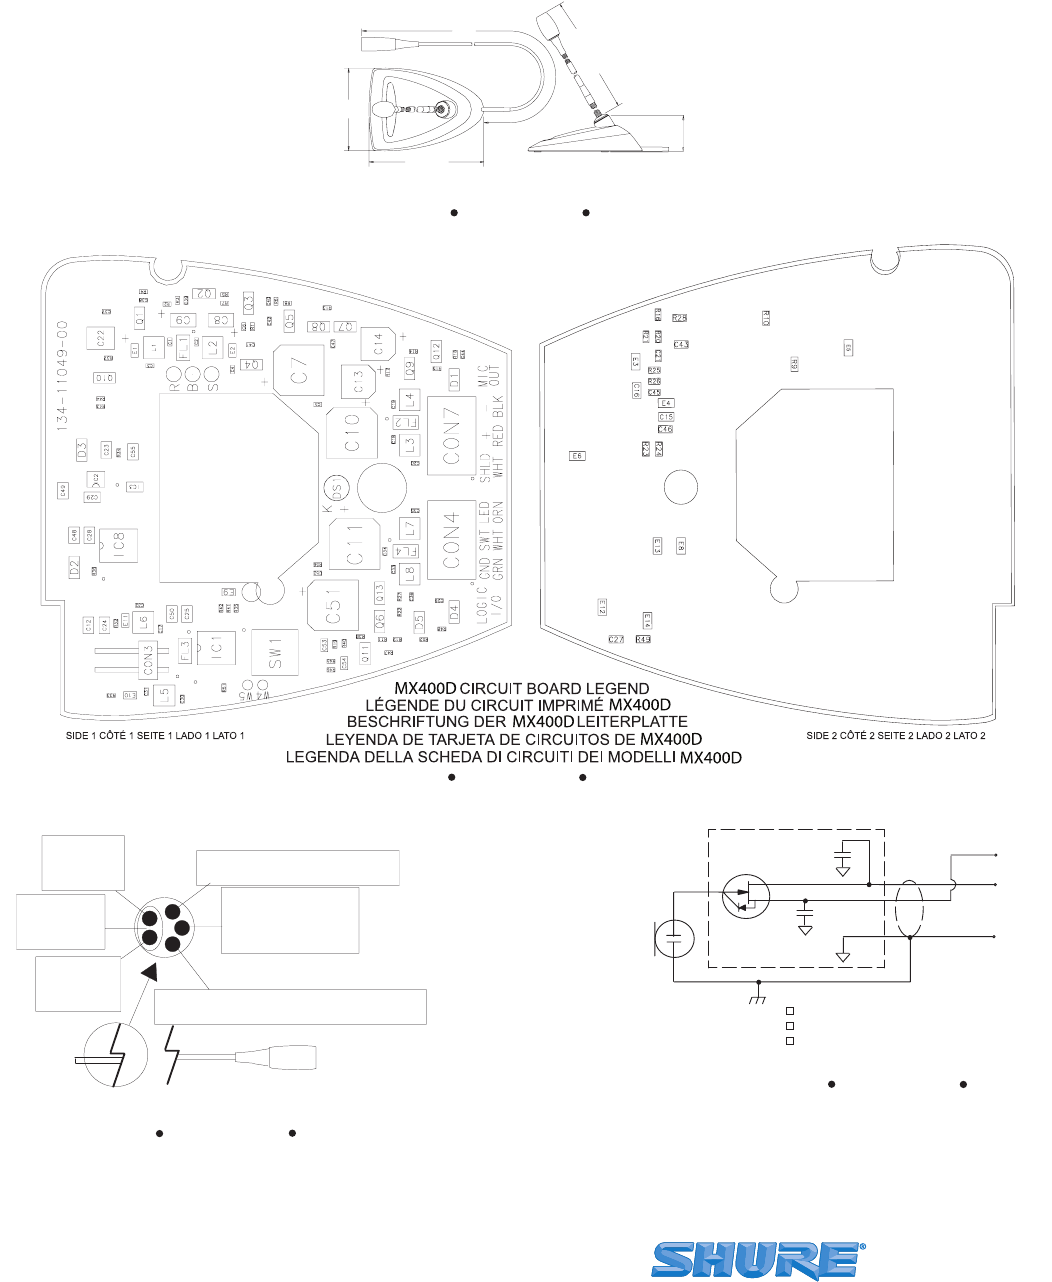 Wiring at dsx array page 12 of shure musical instrument mx400d user guide rh music manualsonline